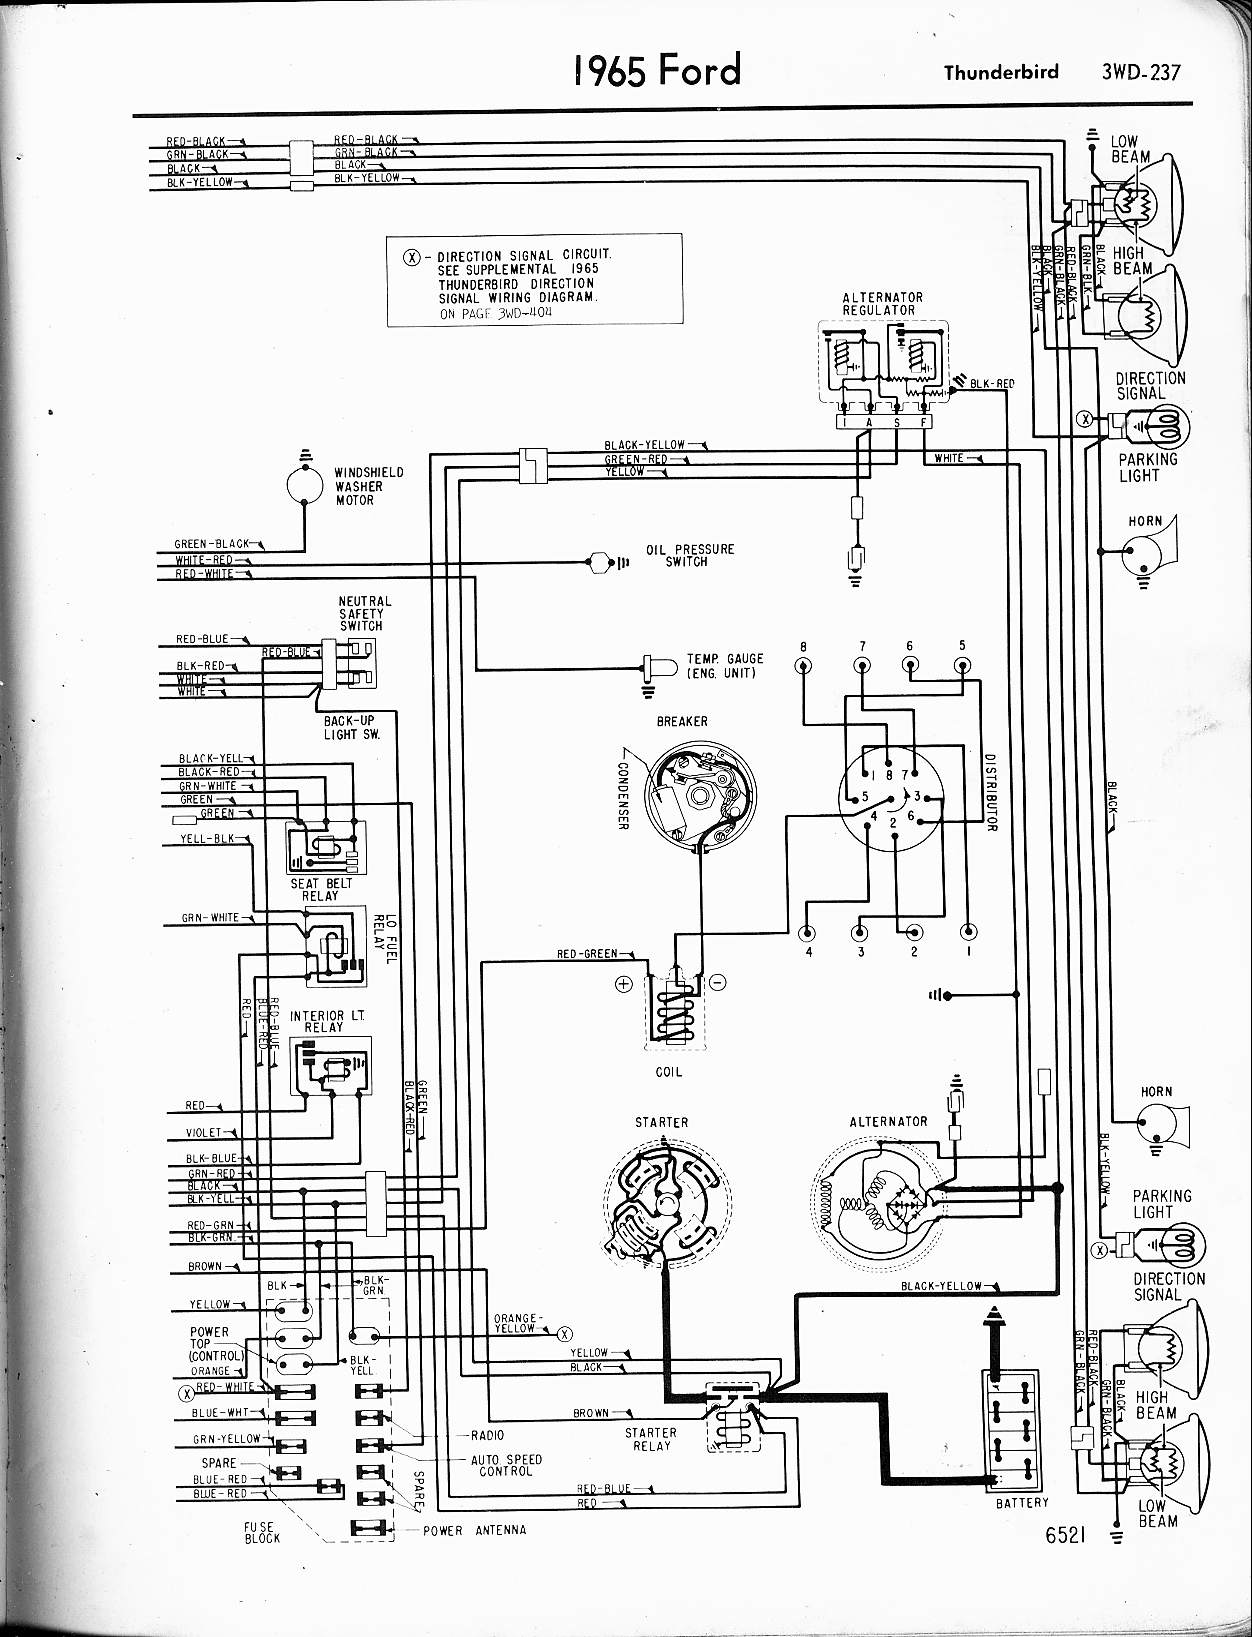 MWire5765 237 1964 1966 thunderbirfd wiring schematic 66 mustang wiring diagram 1966 ford fairlane wiring diagram at gsmportal.co